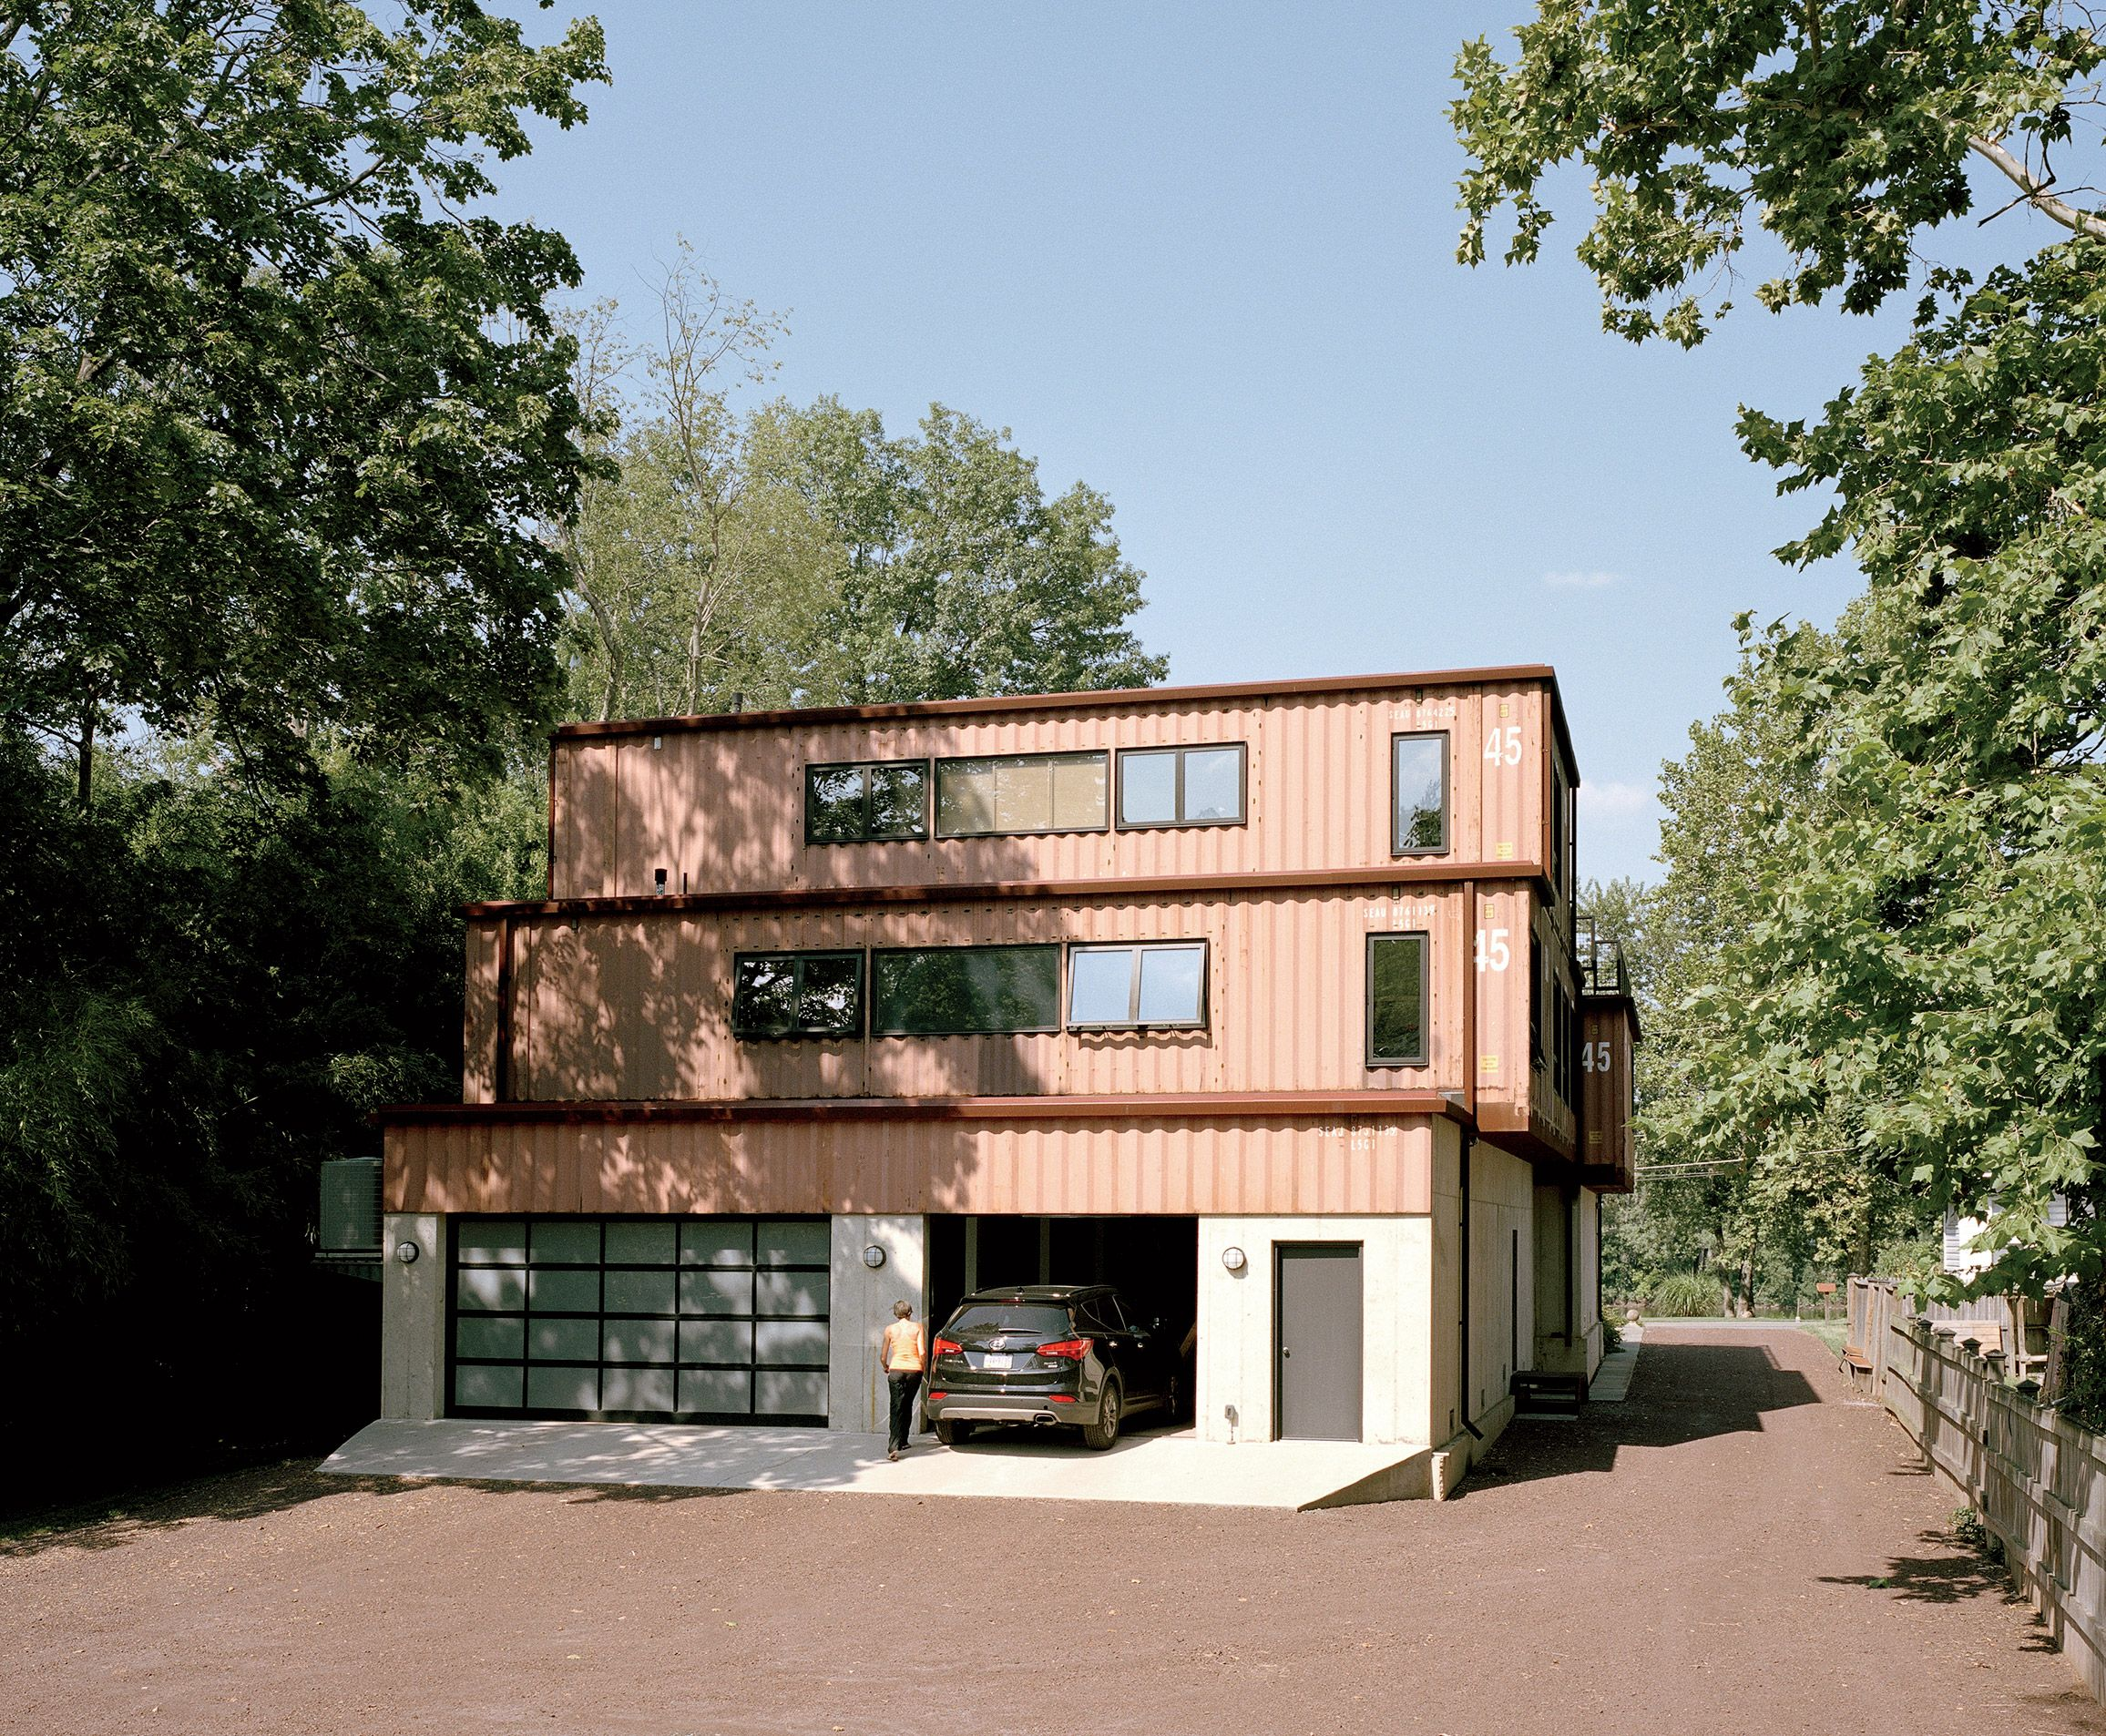 Facade And Garage Entrance Of Shipping Container Home In